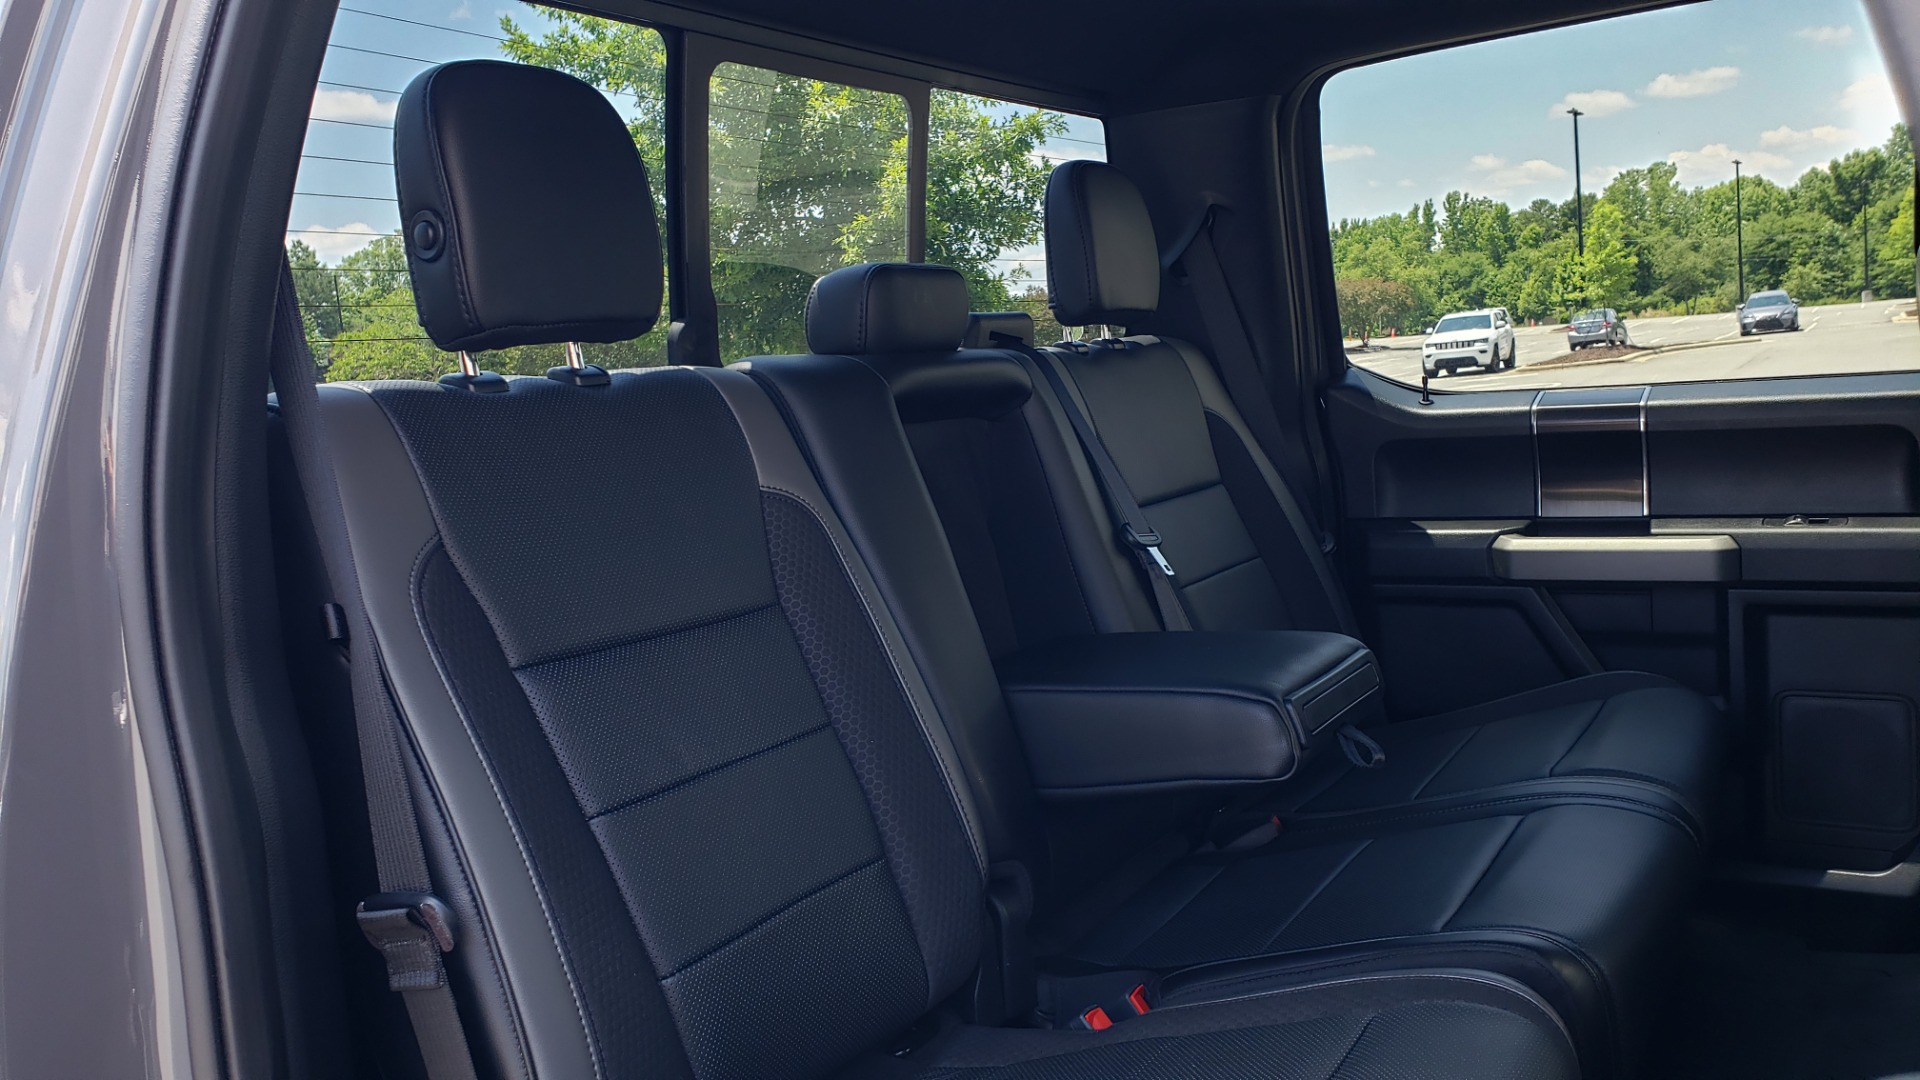 Used 2020 Ford F-150 RAPTOR 4X4 SUPERCREW / 3.5L ECOBOOST / 10-SPD AUTO / SUNROOF / REARVIEW for sale $82,500 at Formula Imports in Charlotte NC 28227 73